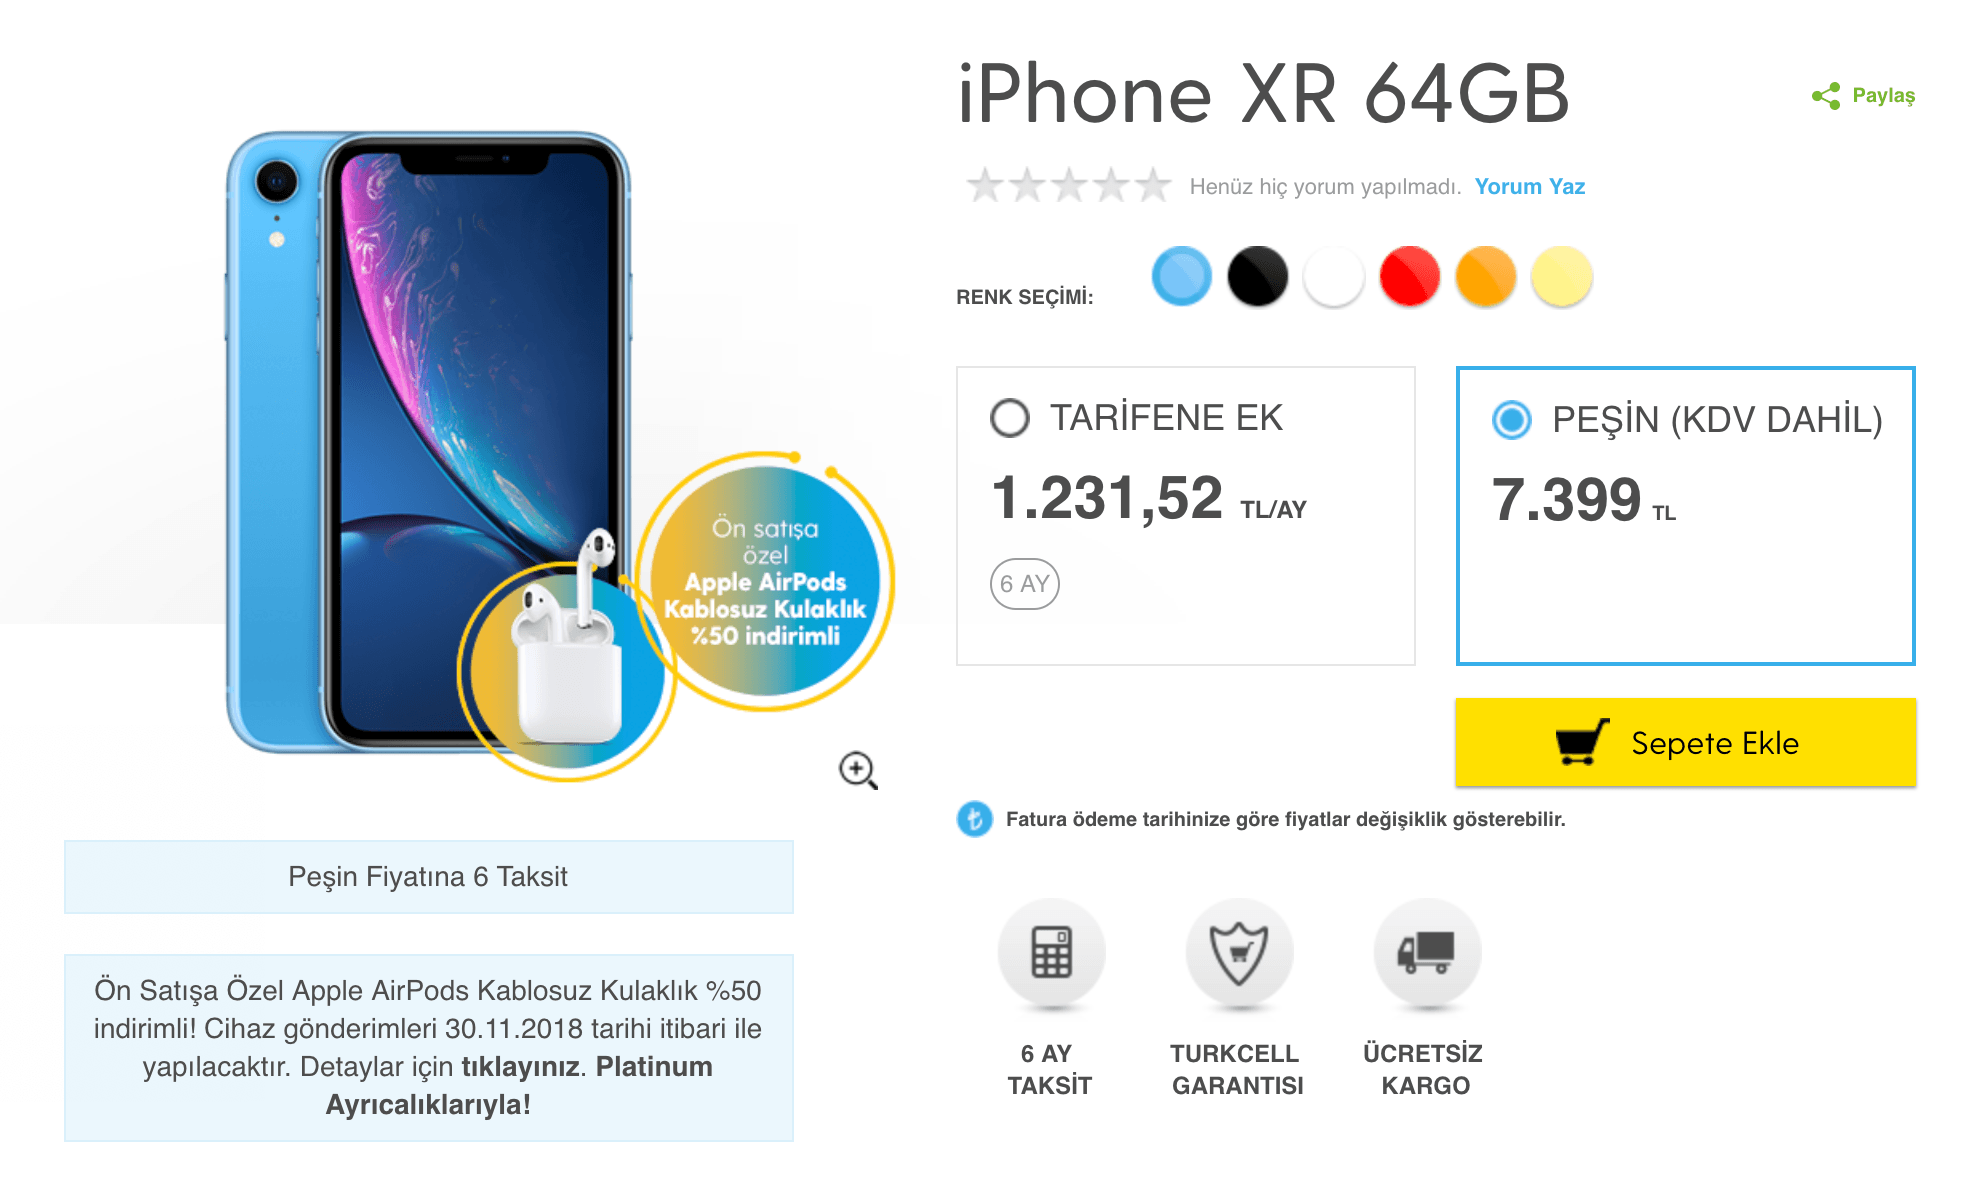 iphone xr 64 gb turkcell